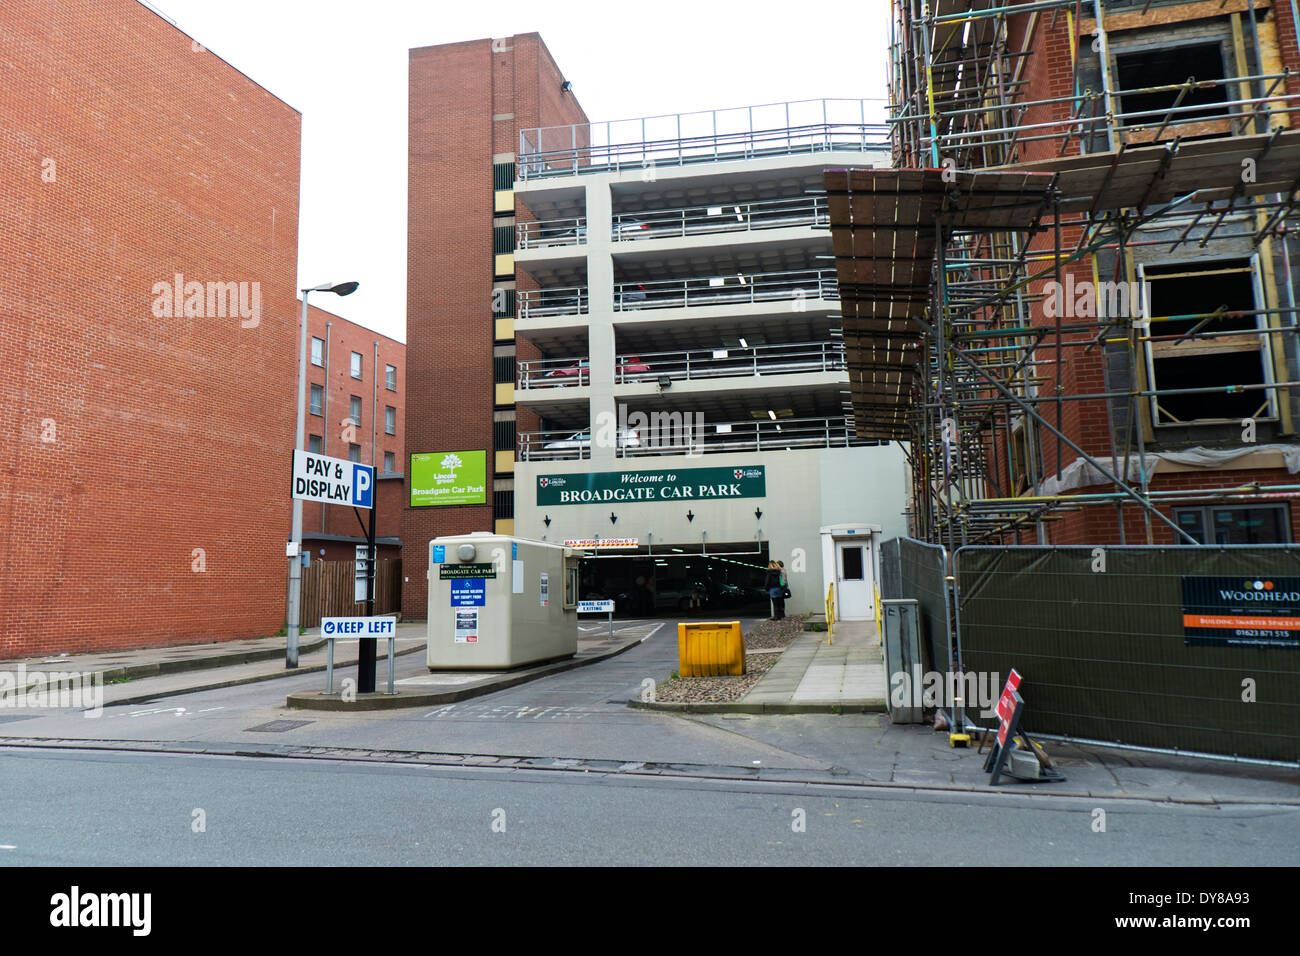 Broadgate multi-storey car park Lincoln City Lincolnshire outside exterior facade front pay and display UK GB England - Stock Image